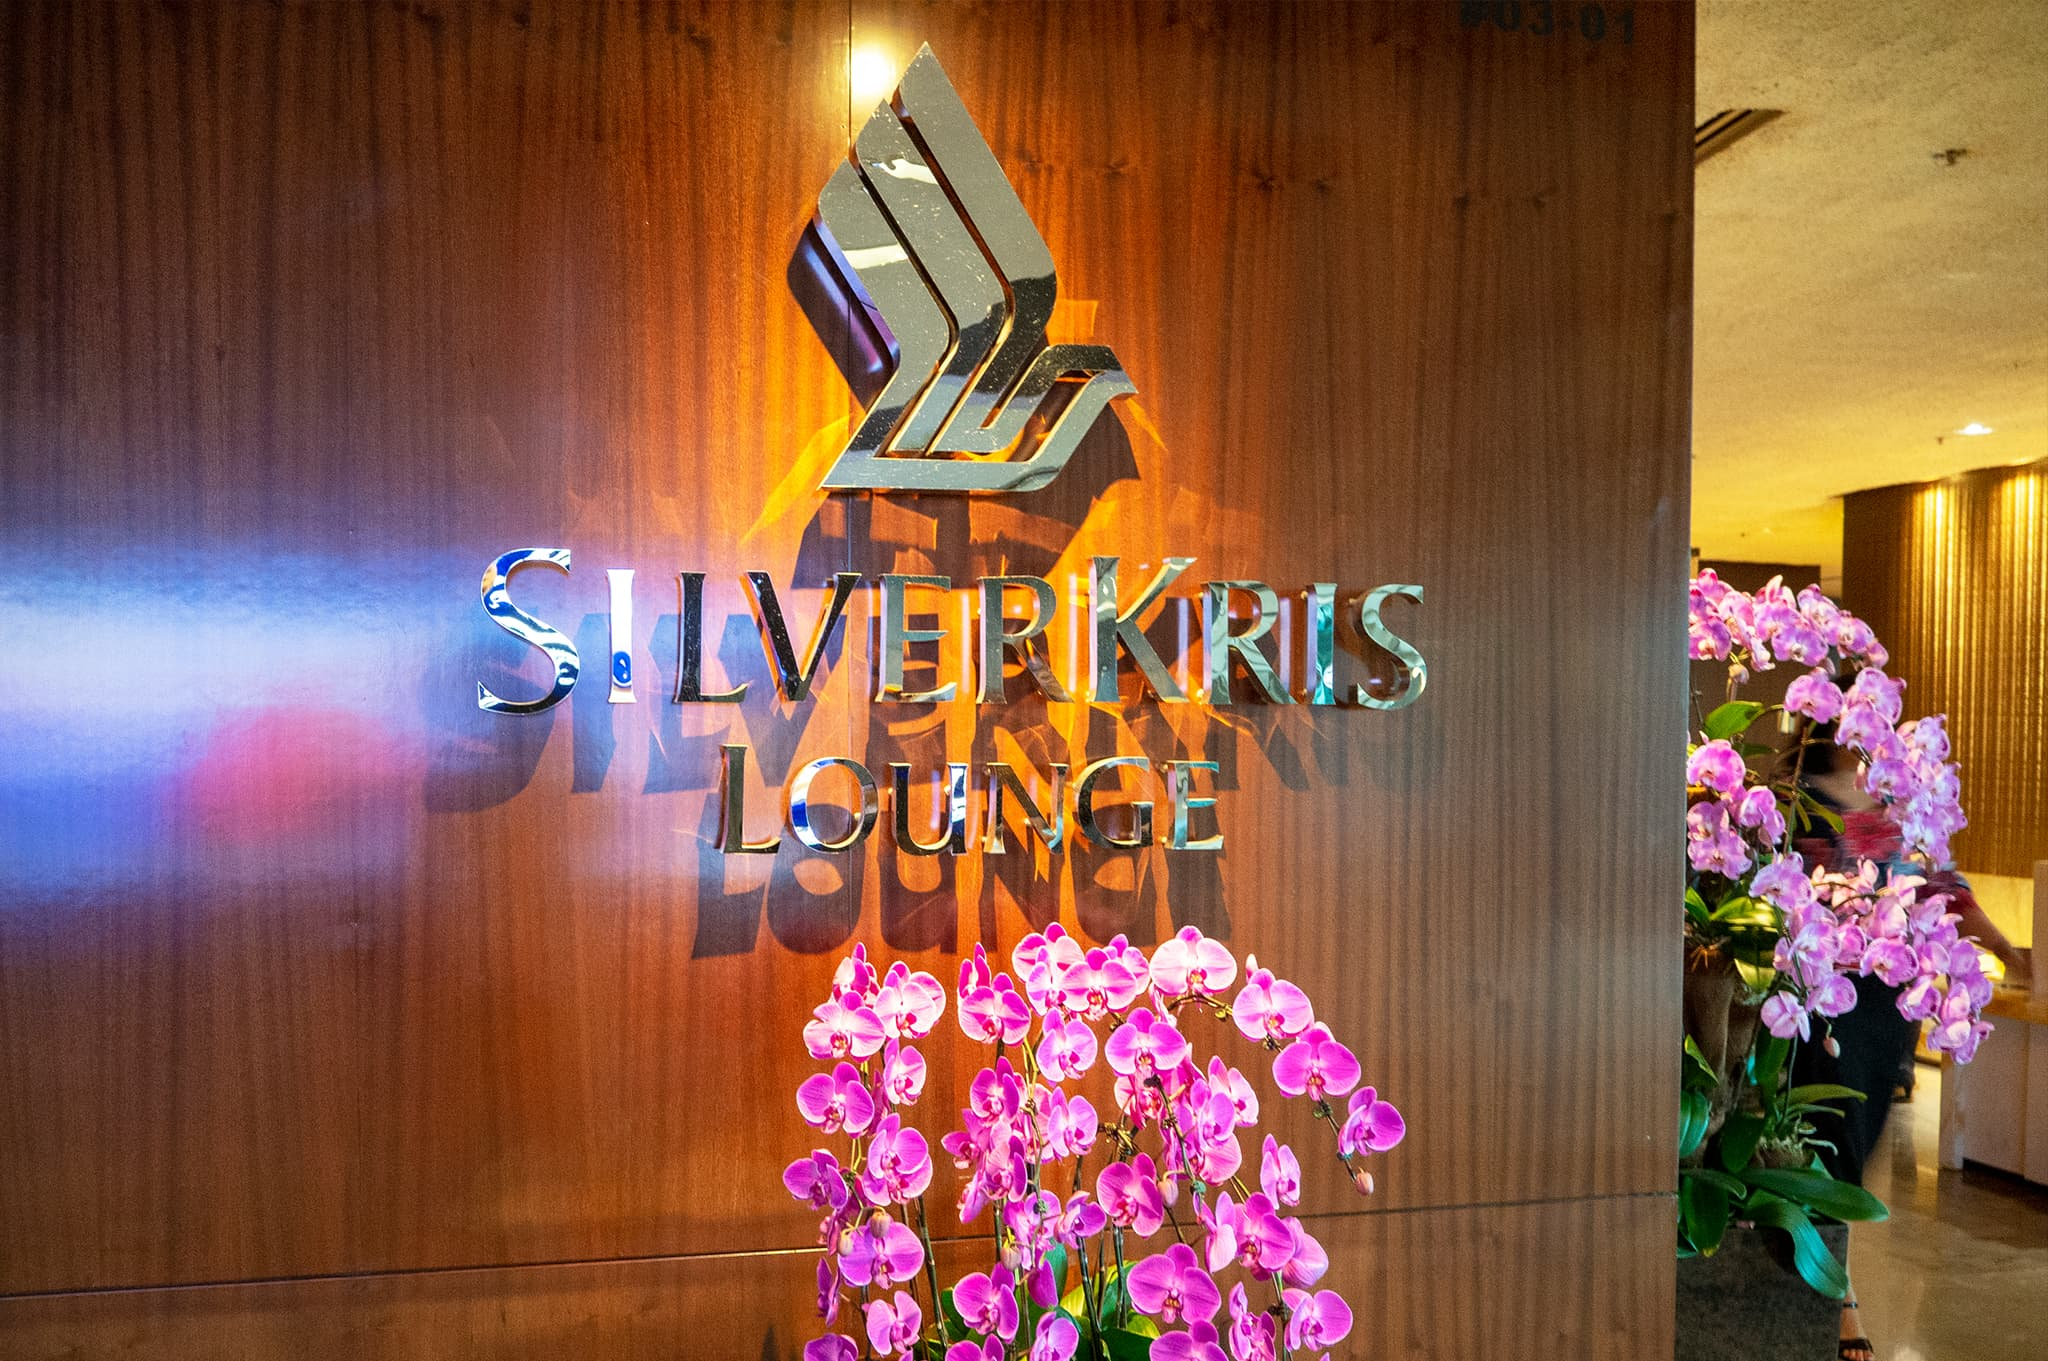 Singapore Airlines Business Class SilverKris Lounge T3 Changi Airport